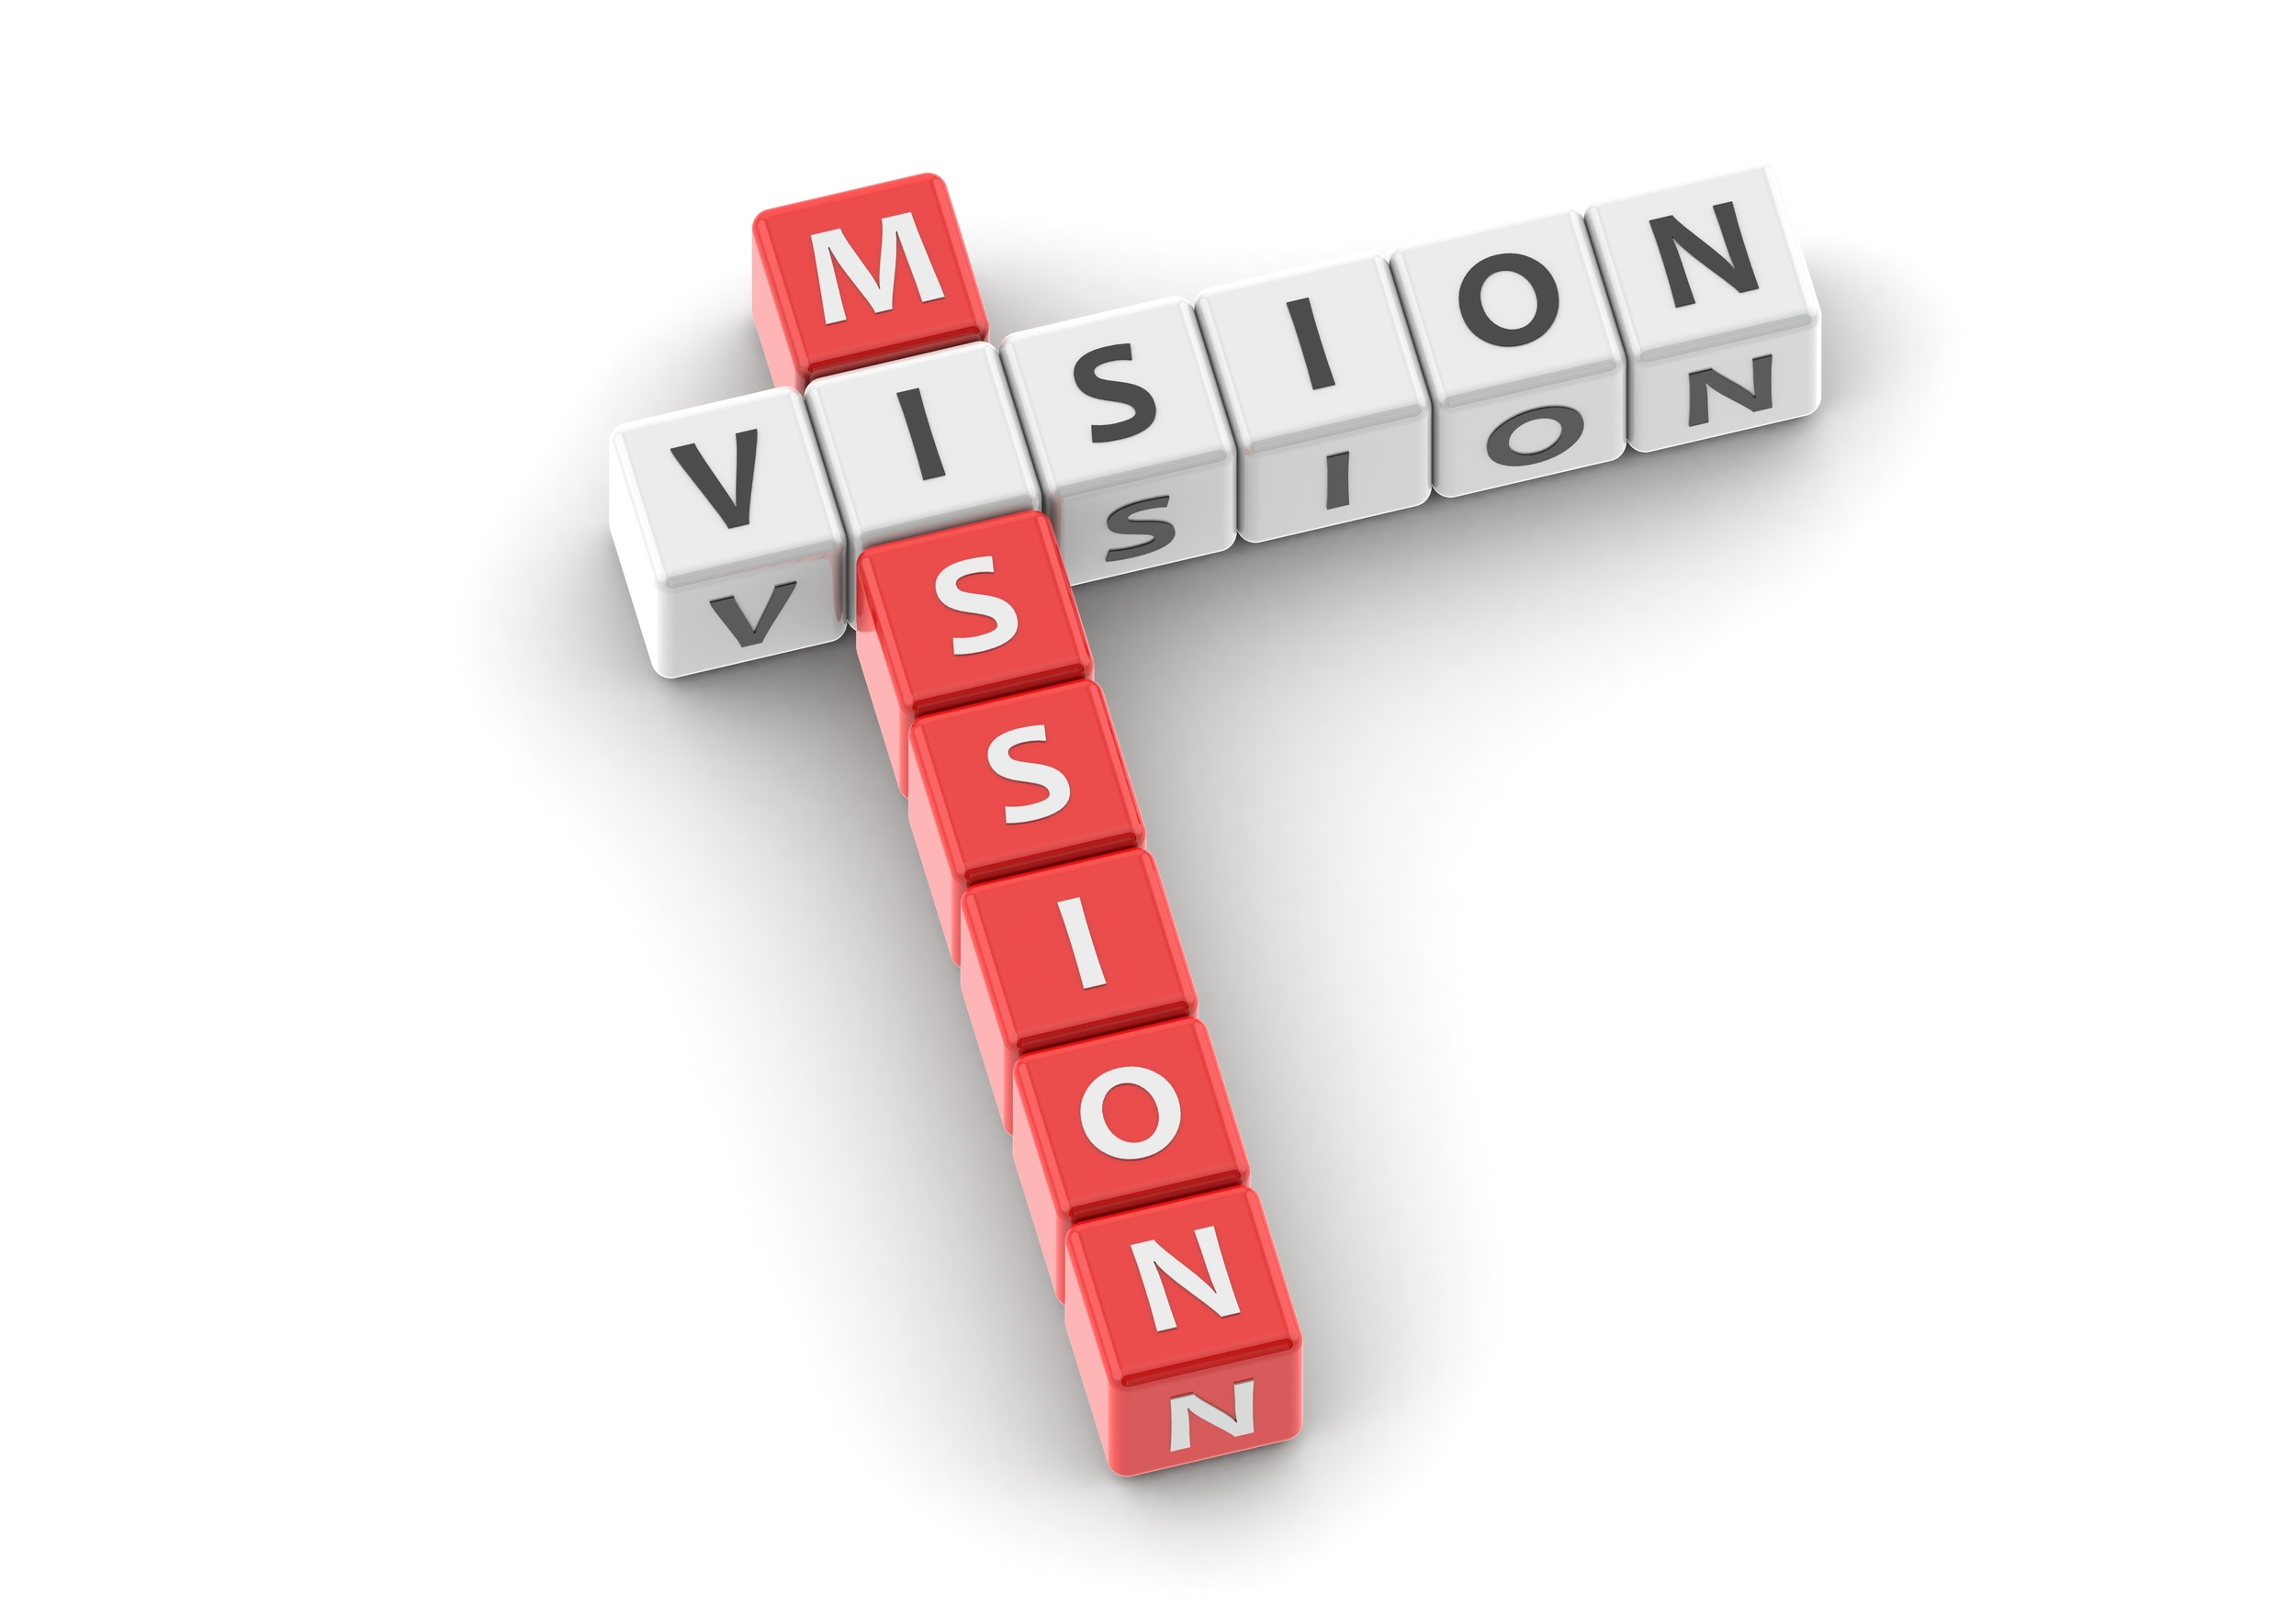 Vision, Mission, Strategy